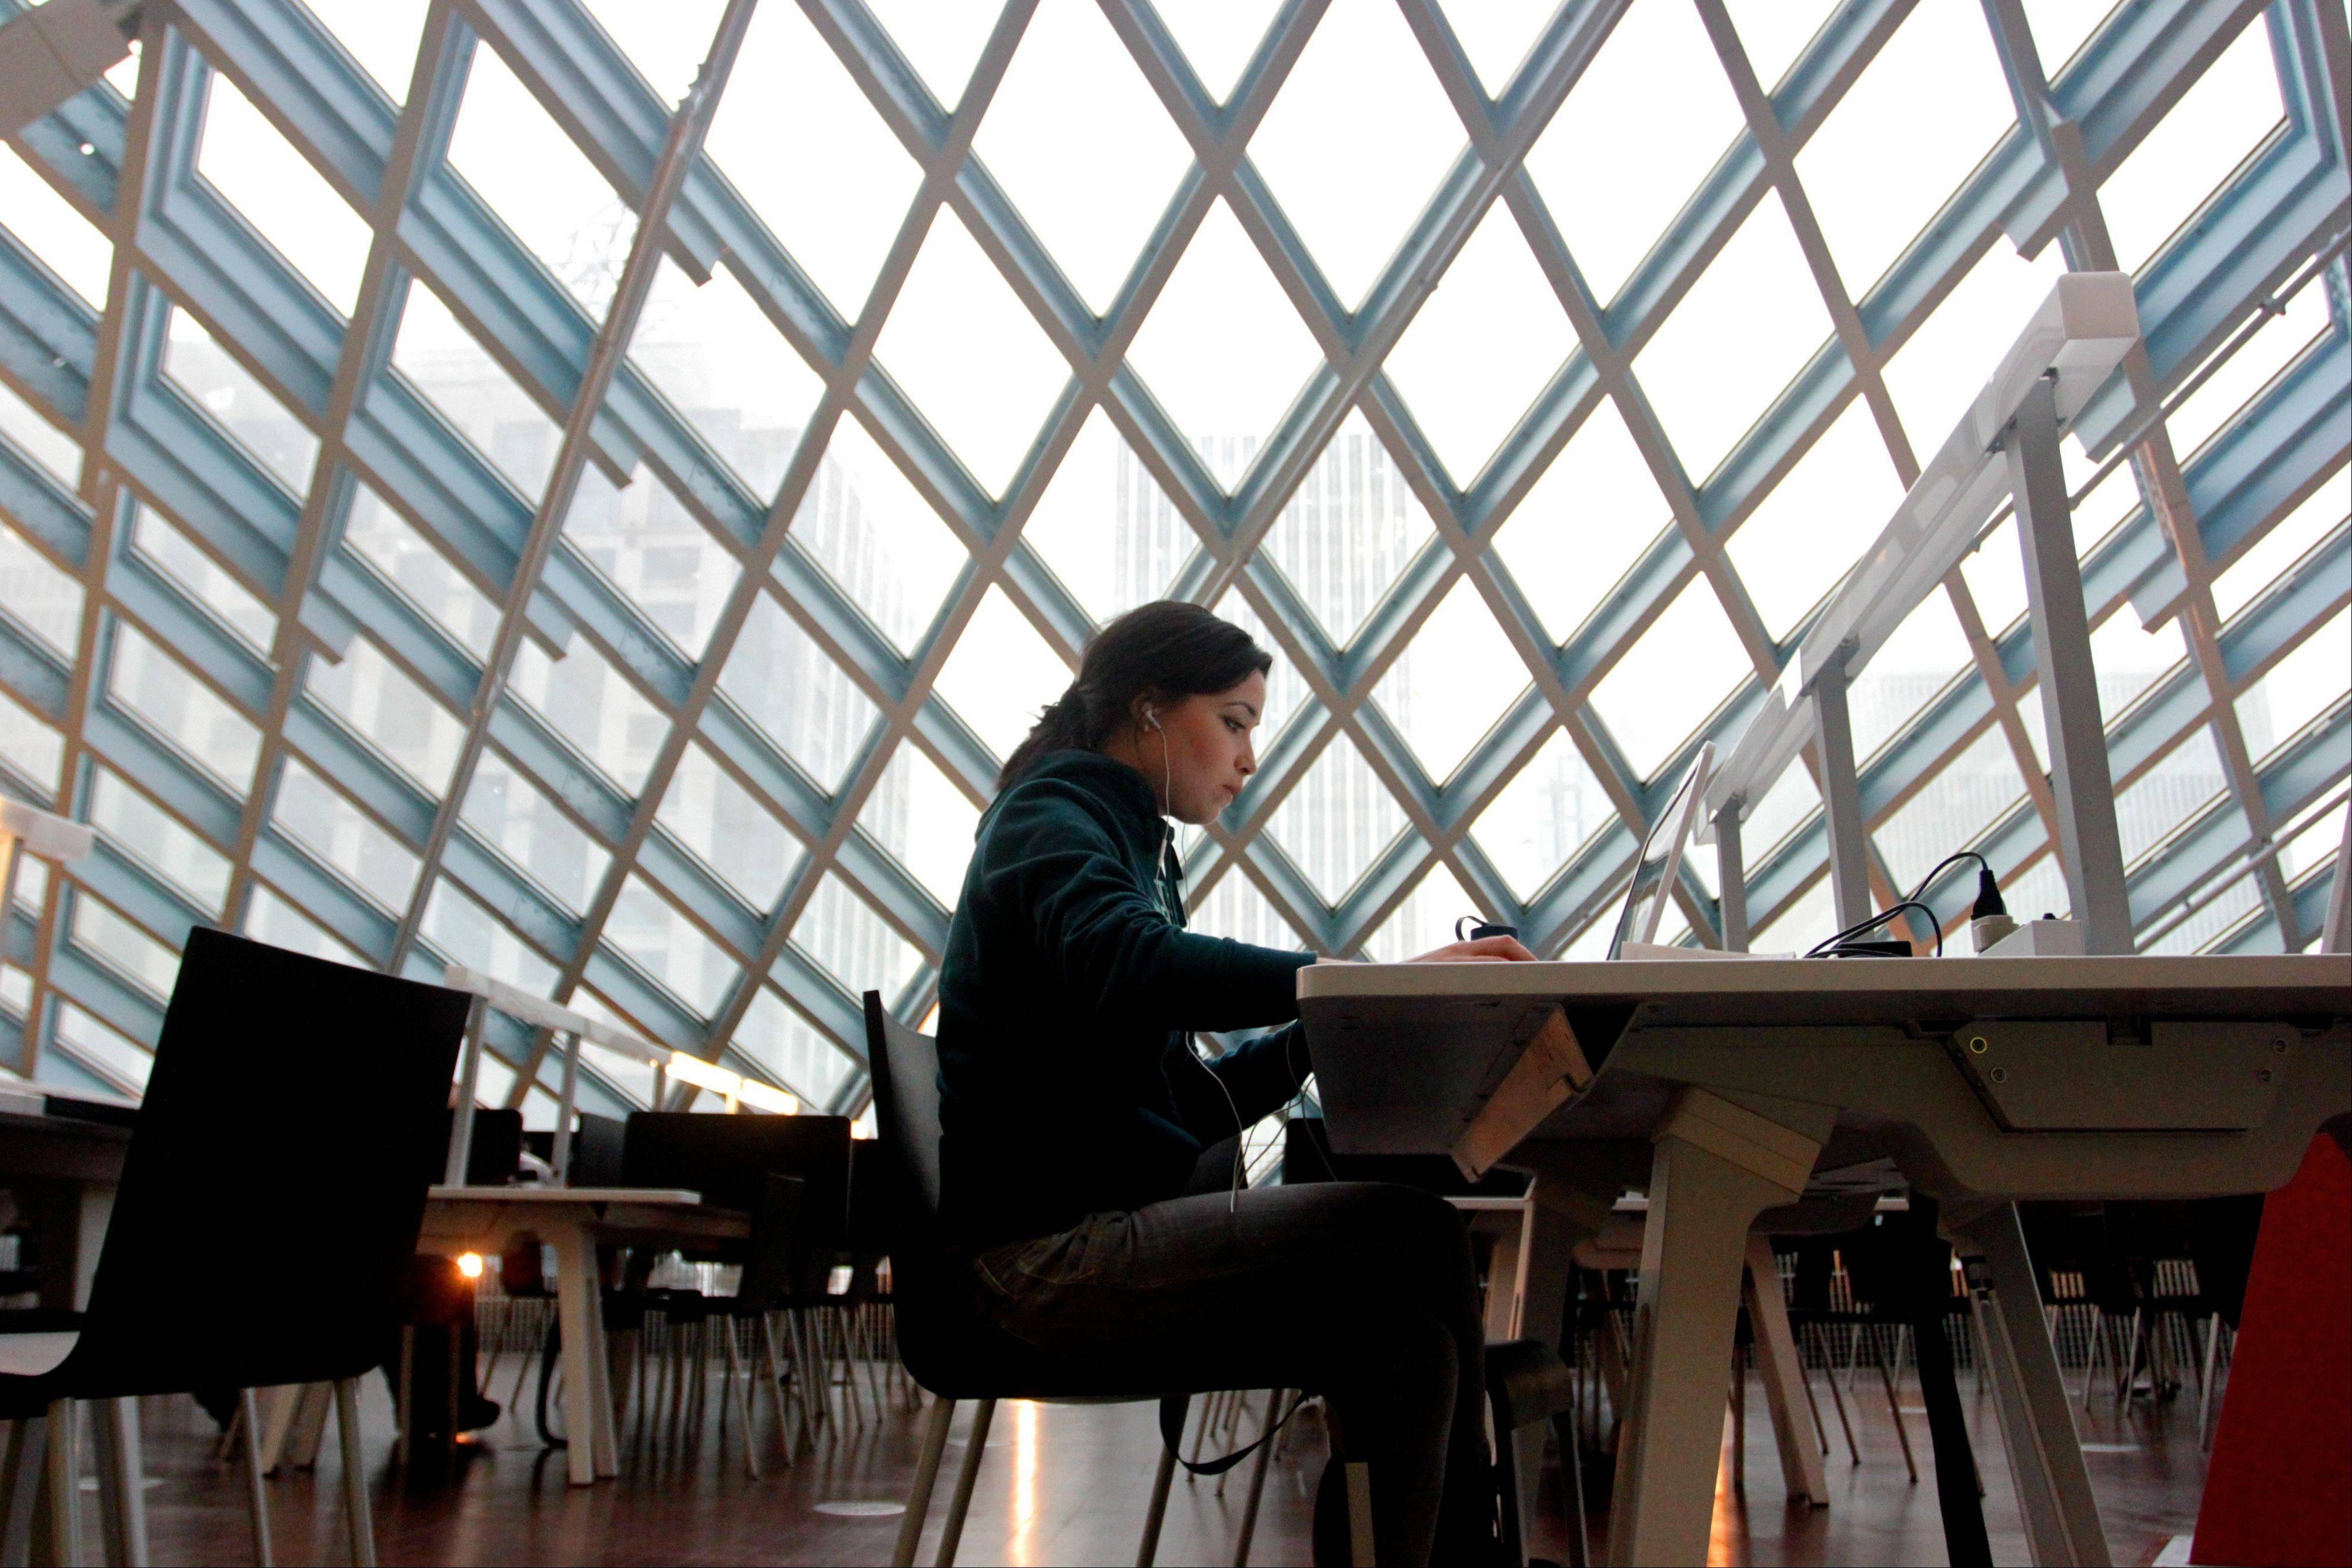 A woman works on her laptop at the Seattle Central Library in downtown Seattle.